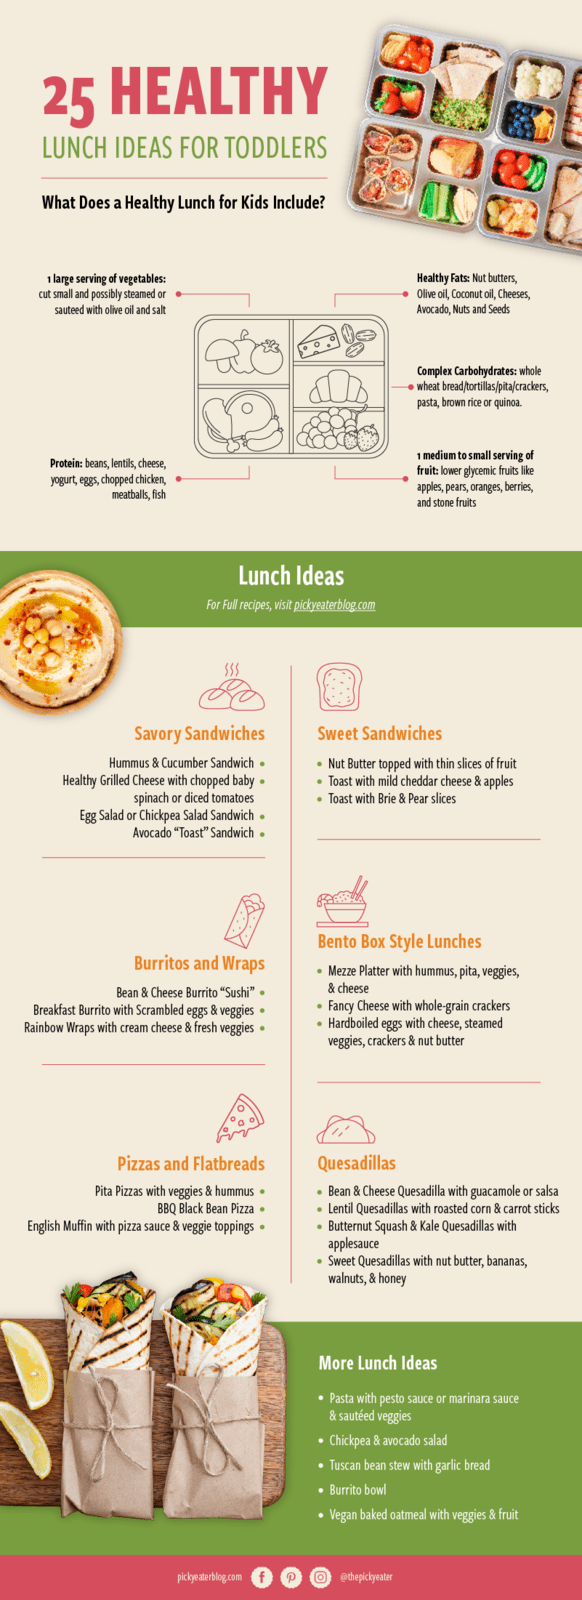 healthy toddler lunch ideas infographic